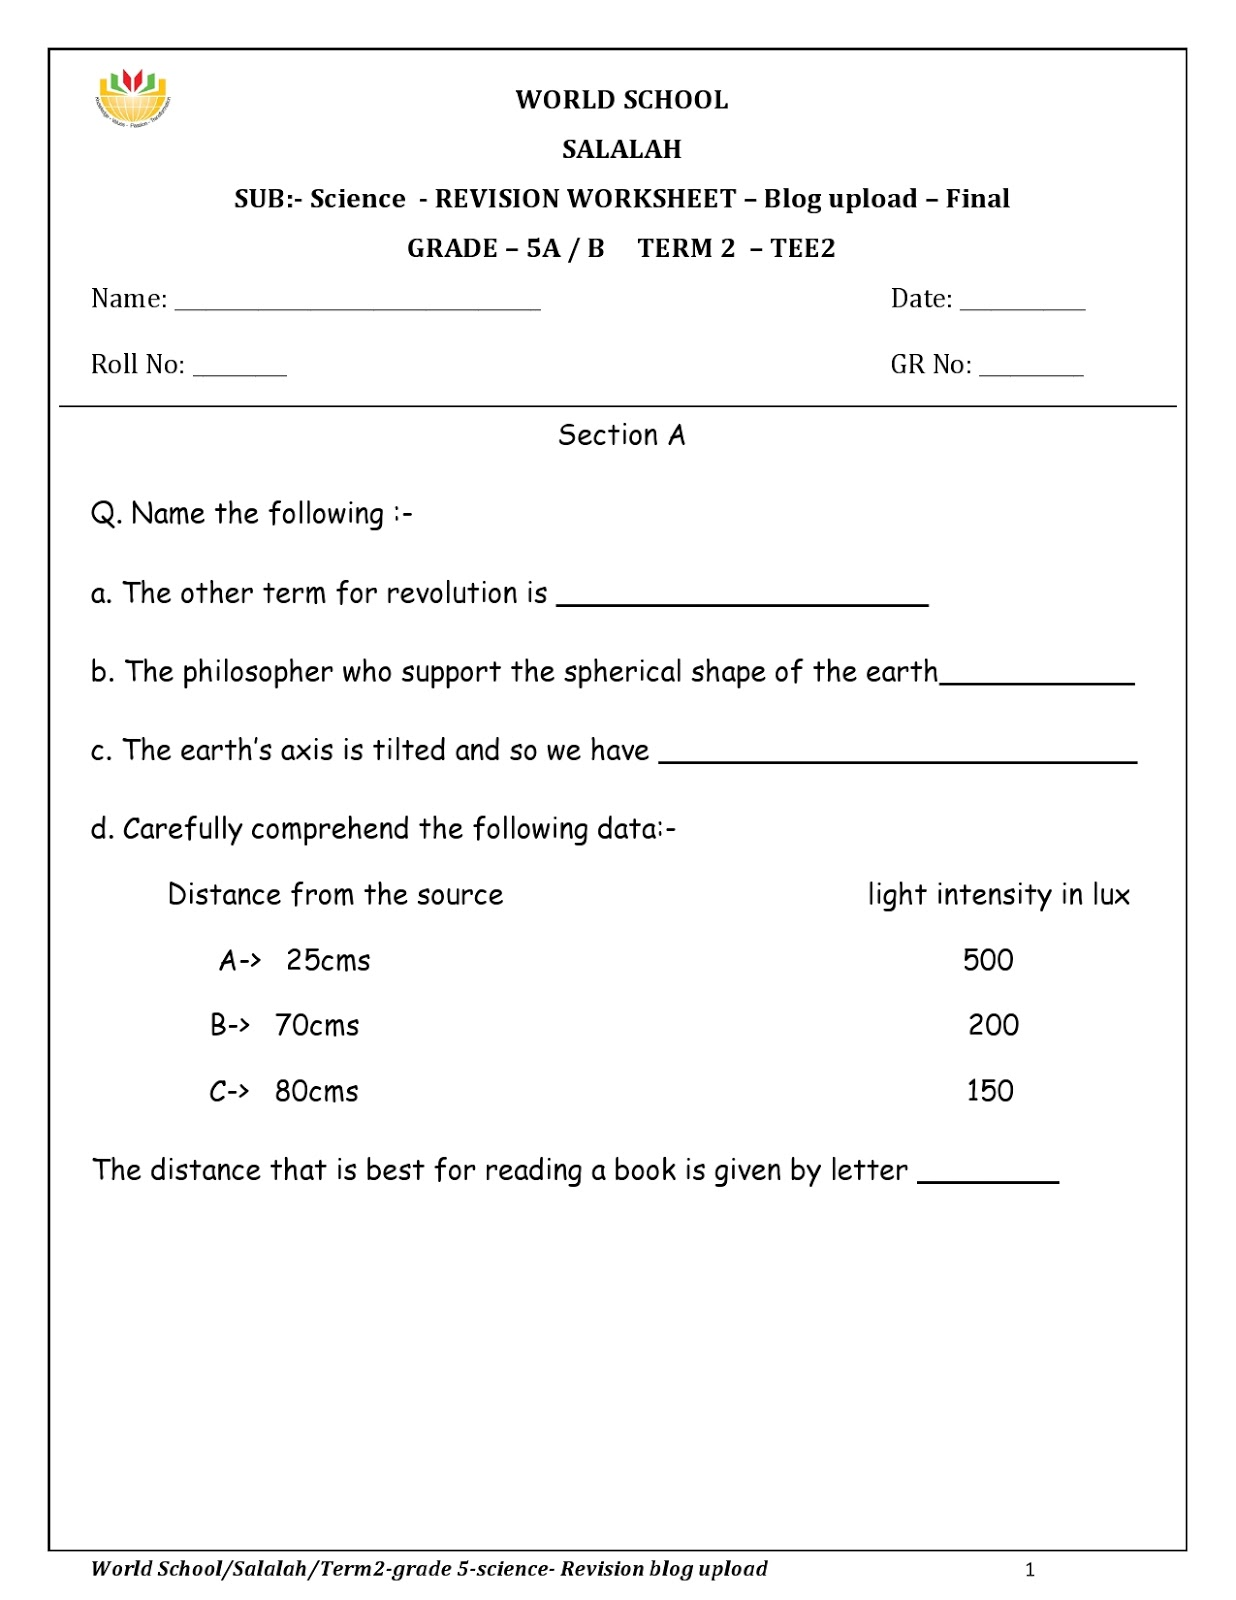 Birla World School Oman Revision Worksheets For Grade 5